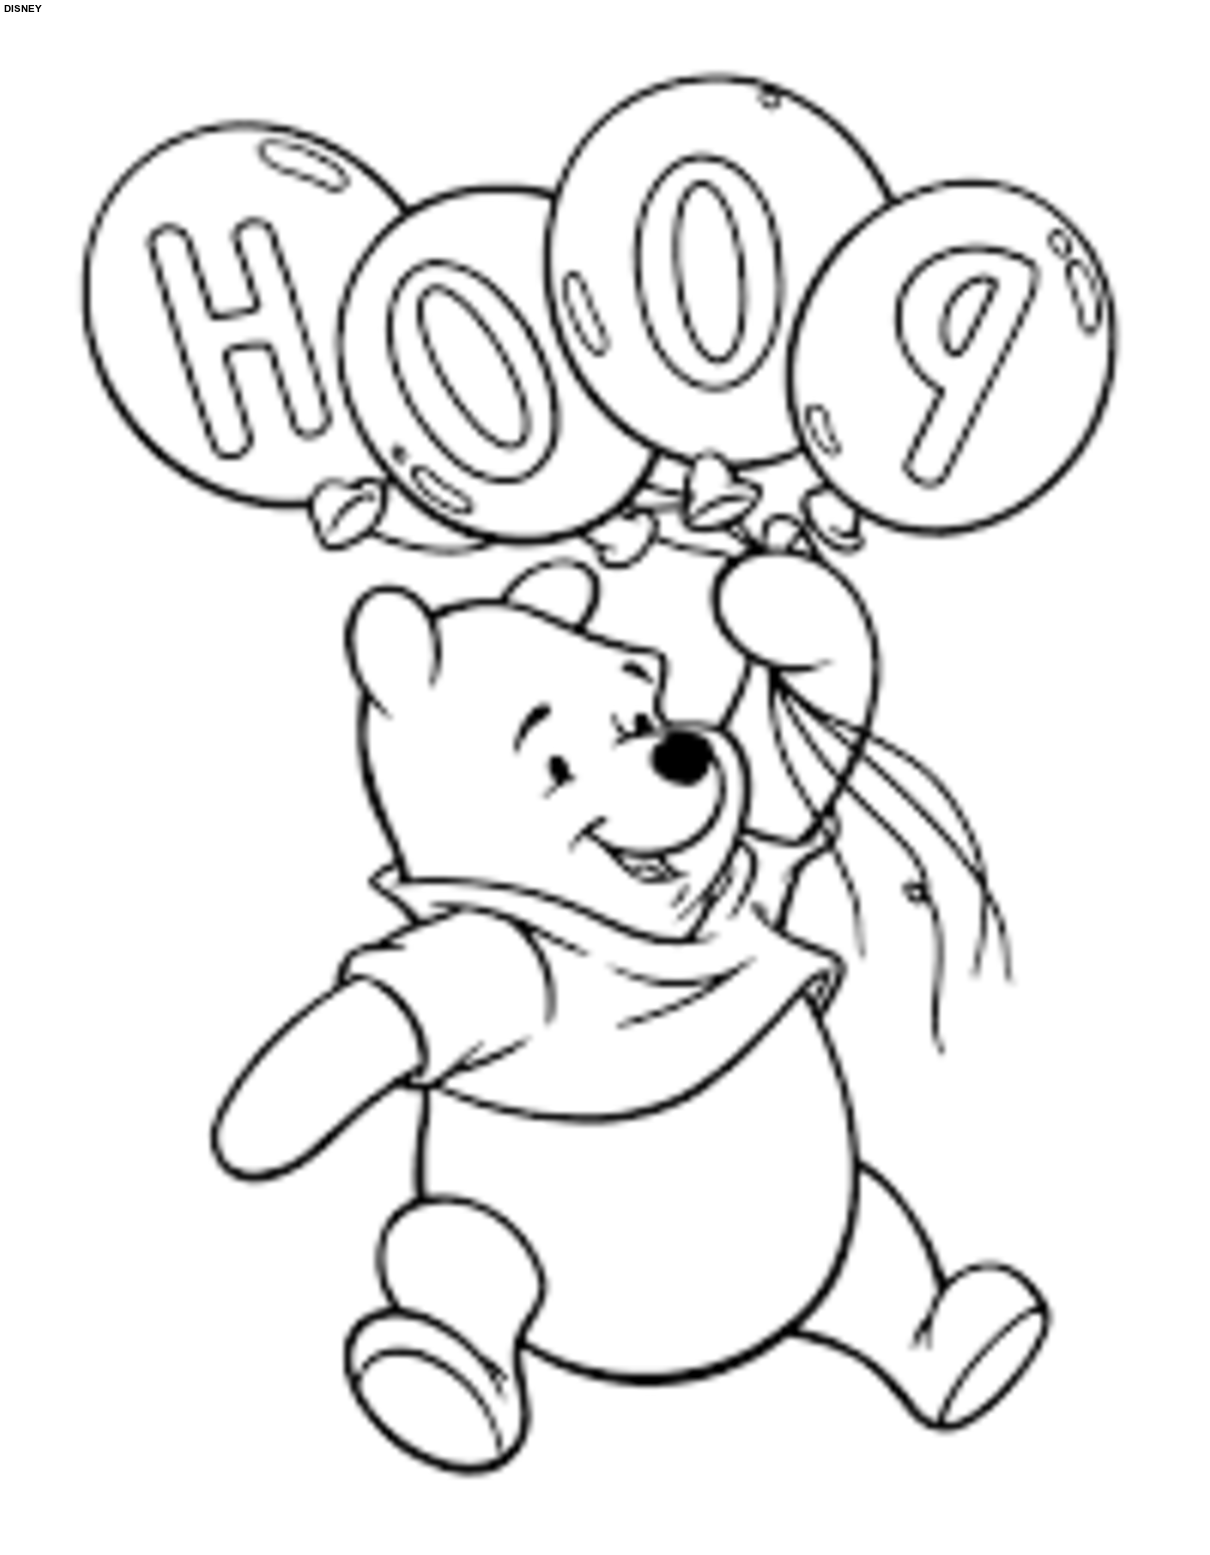 Coloring Pages Cartoon Characters : Disney colouring pages cartoon characters coloring